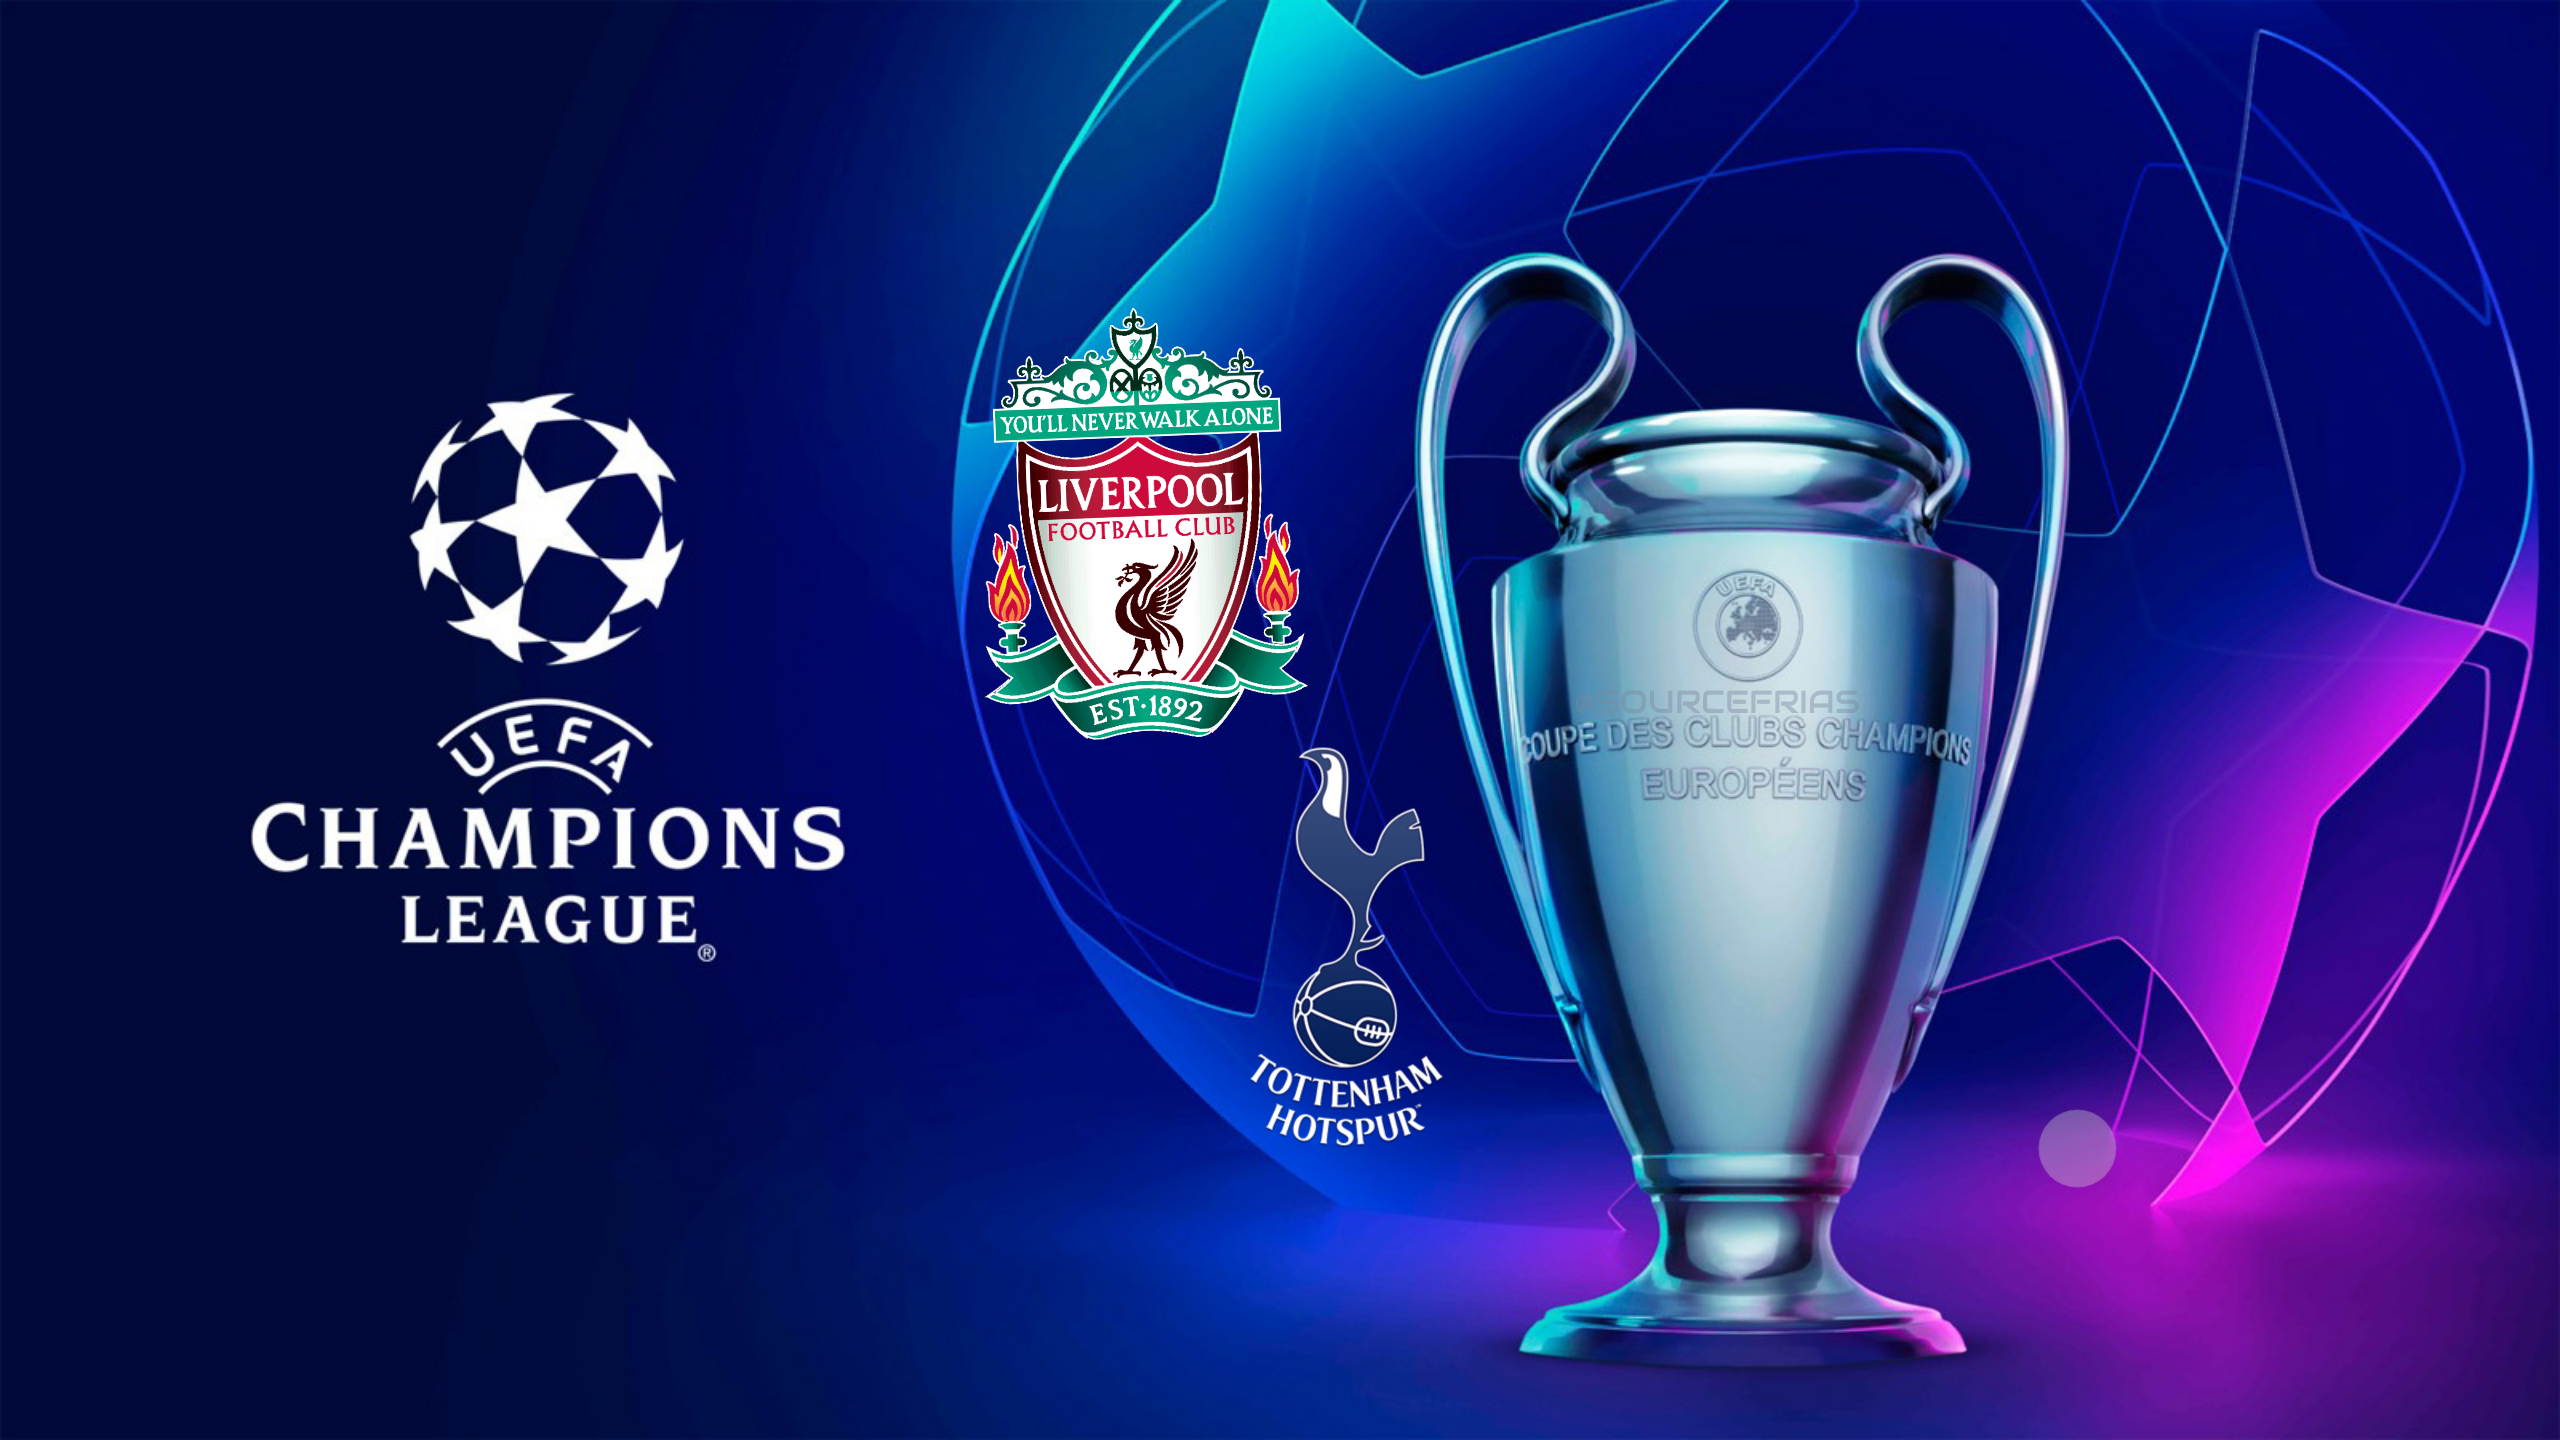 Free Download Champions League Final 2019 Liverpool Vs Tottenham World In Sport 2560x1440 For Your Desktop Mobile Tablet Explore 10 Liverpool Champions League Final 2019 Wallpapers Liverpool Champions League